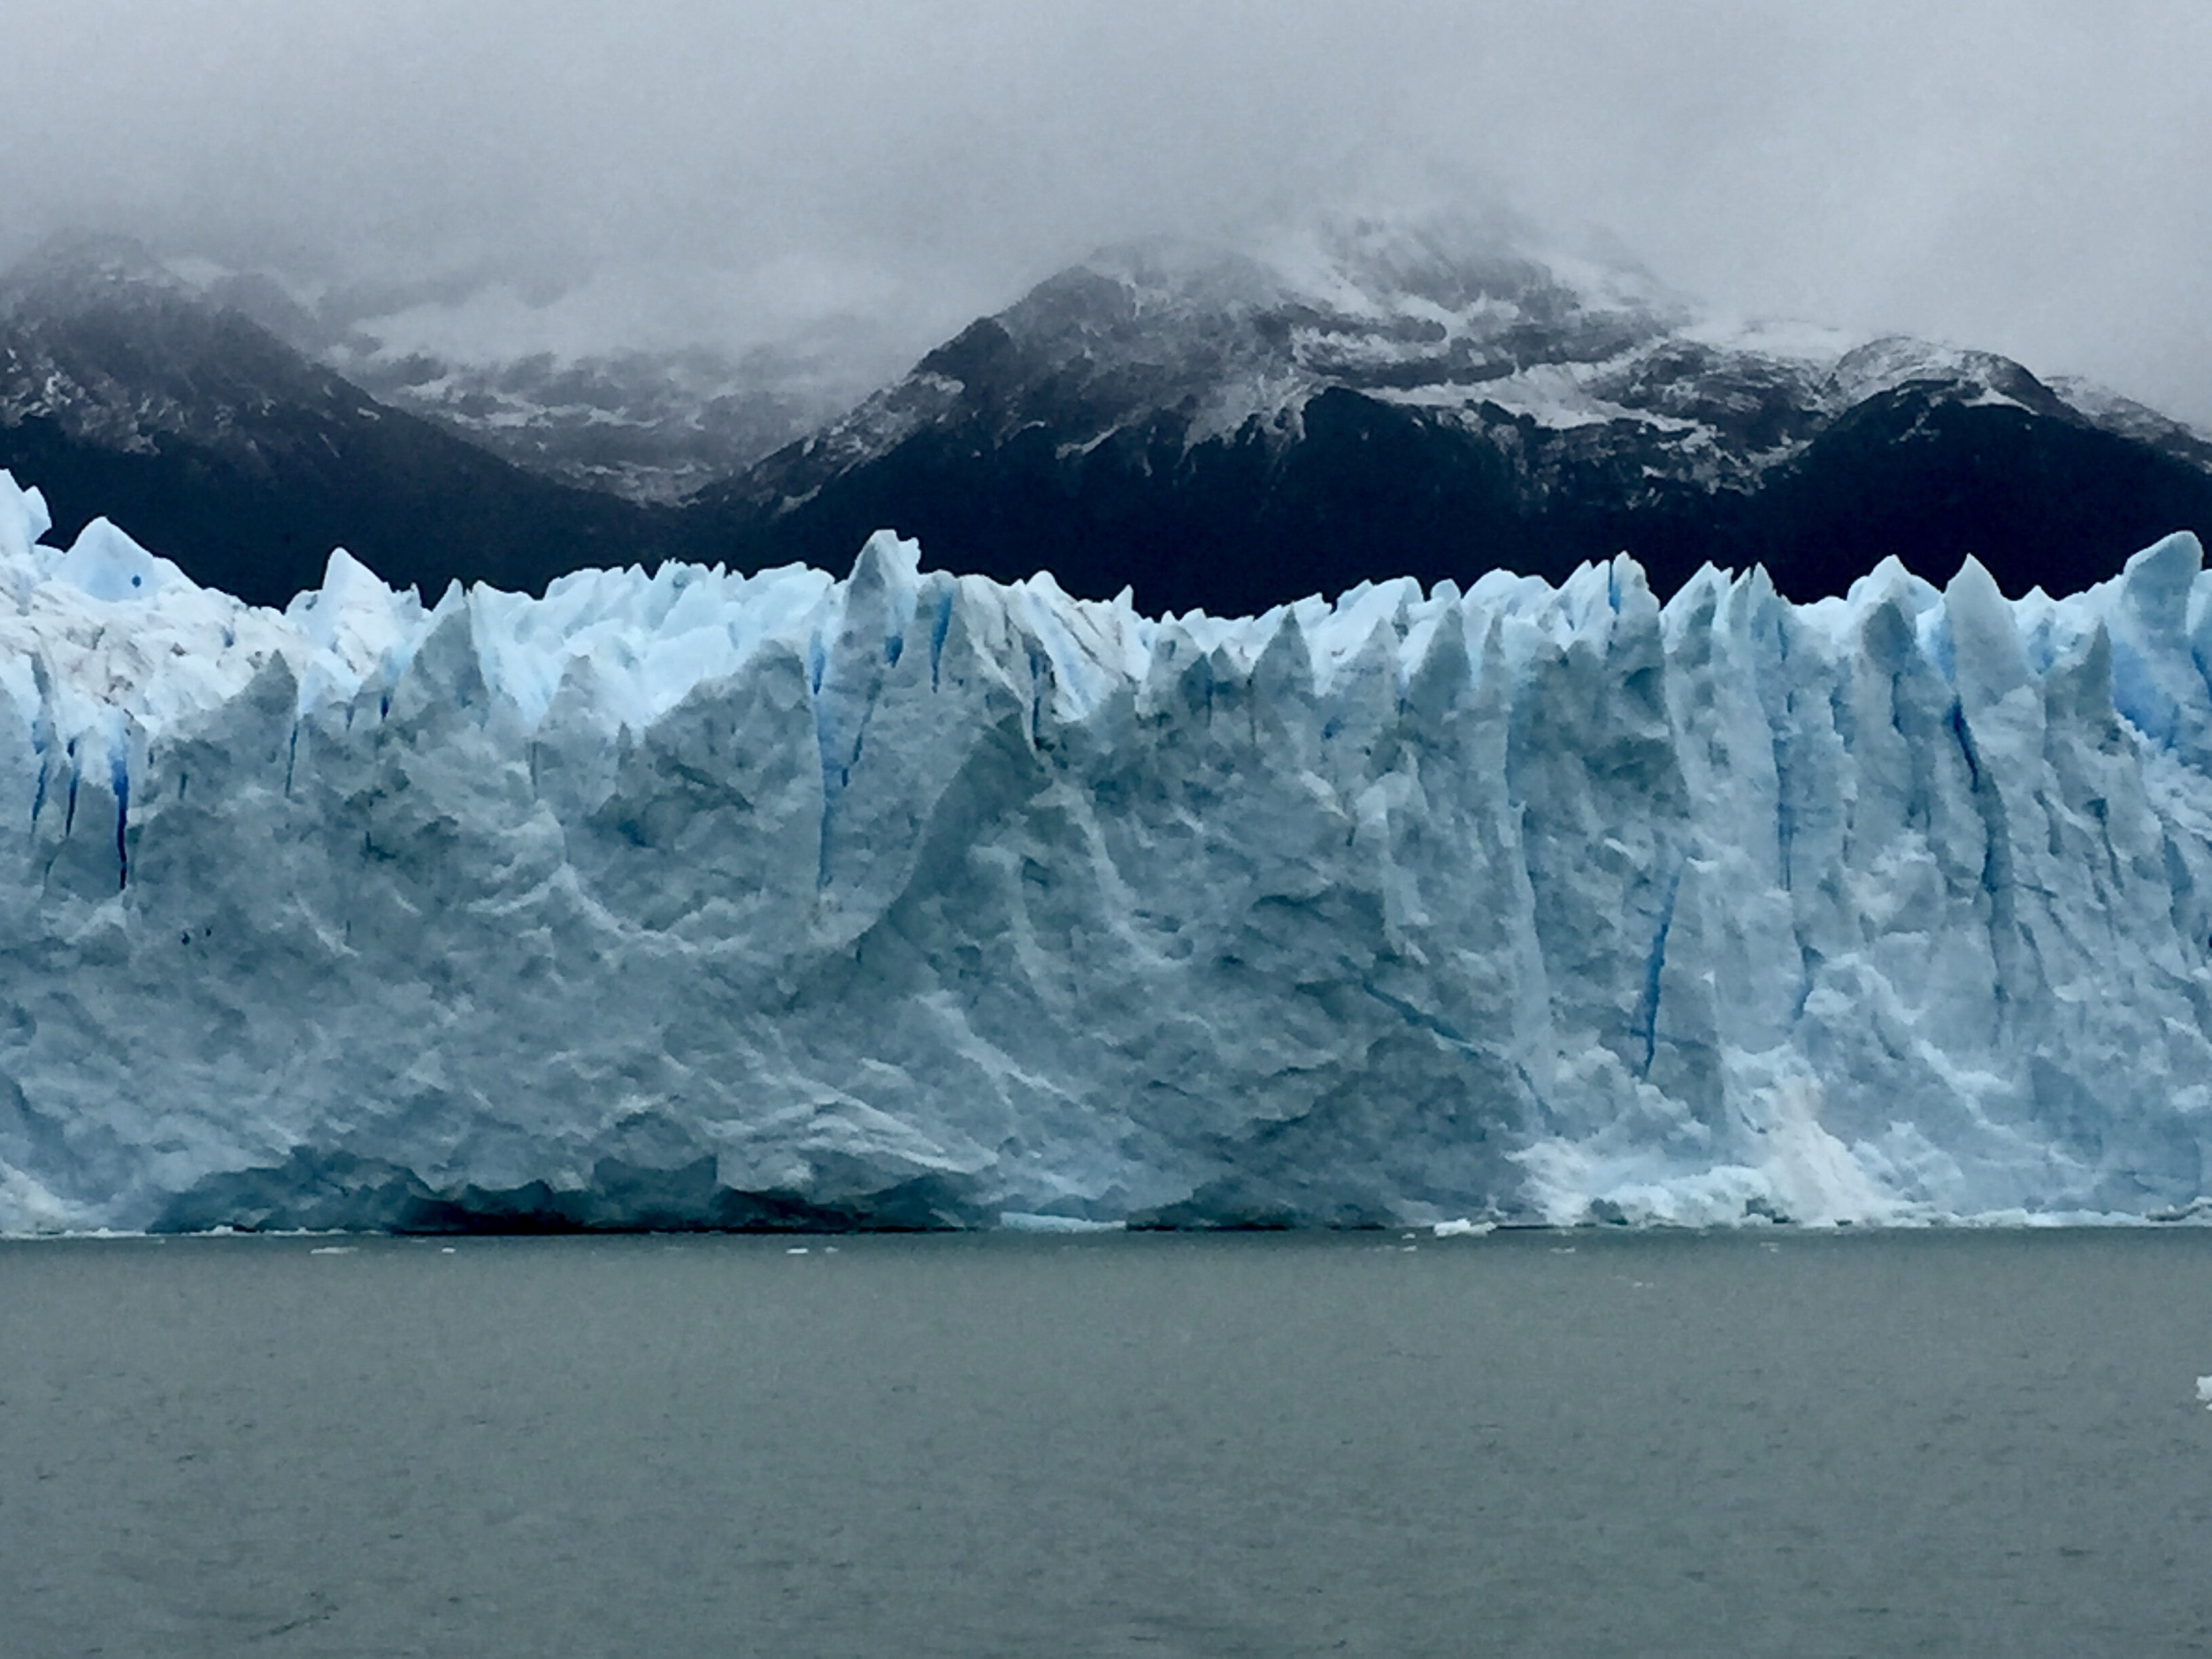 This is about as close as we got, because the glacier was calving. . .and a major collapse was expected at any time.